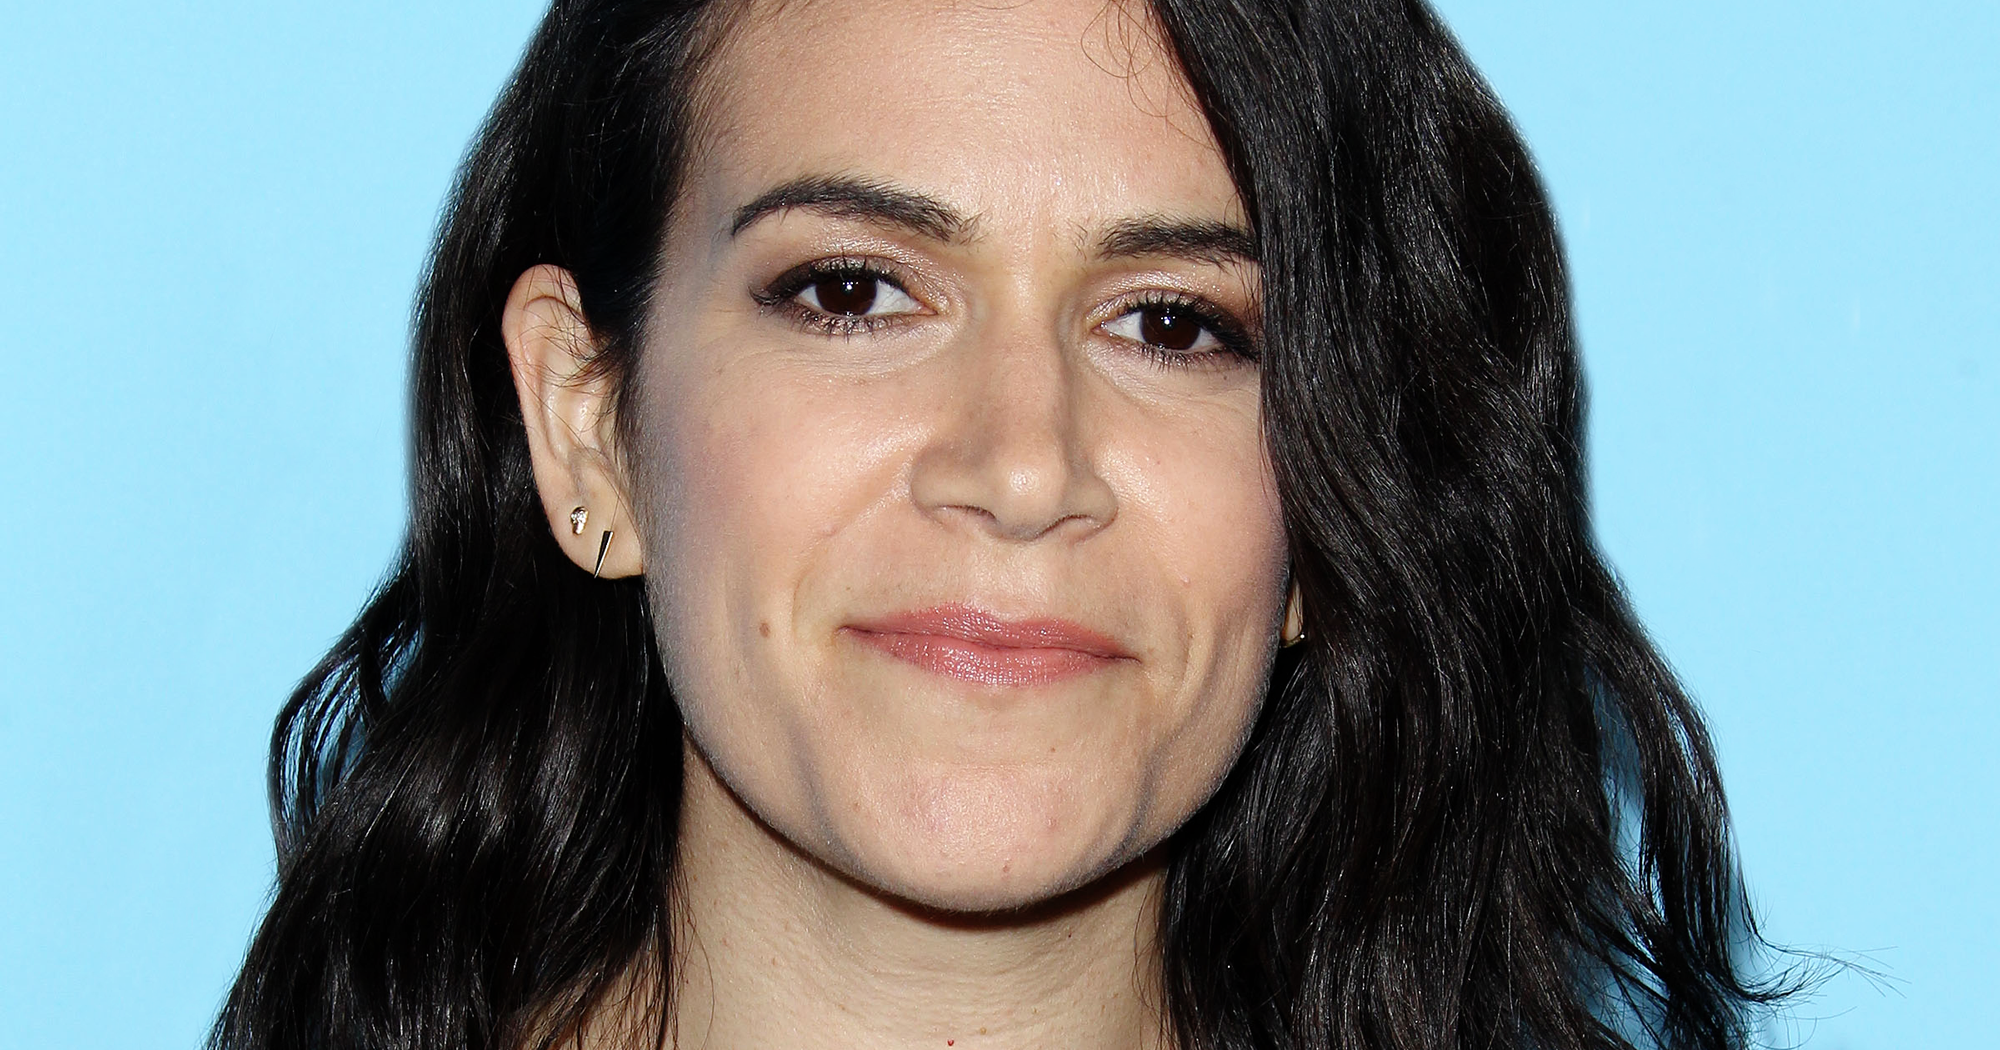 jacobson sex personals Abbi jacobson talks the future of 'broad city,' her life as a comedian on the road and her personal goals  dating sex weddings how-tos health.